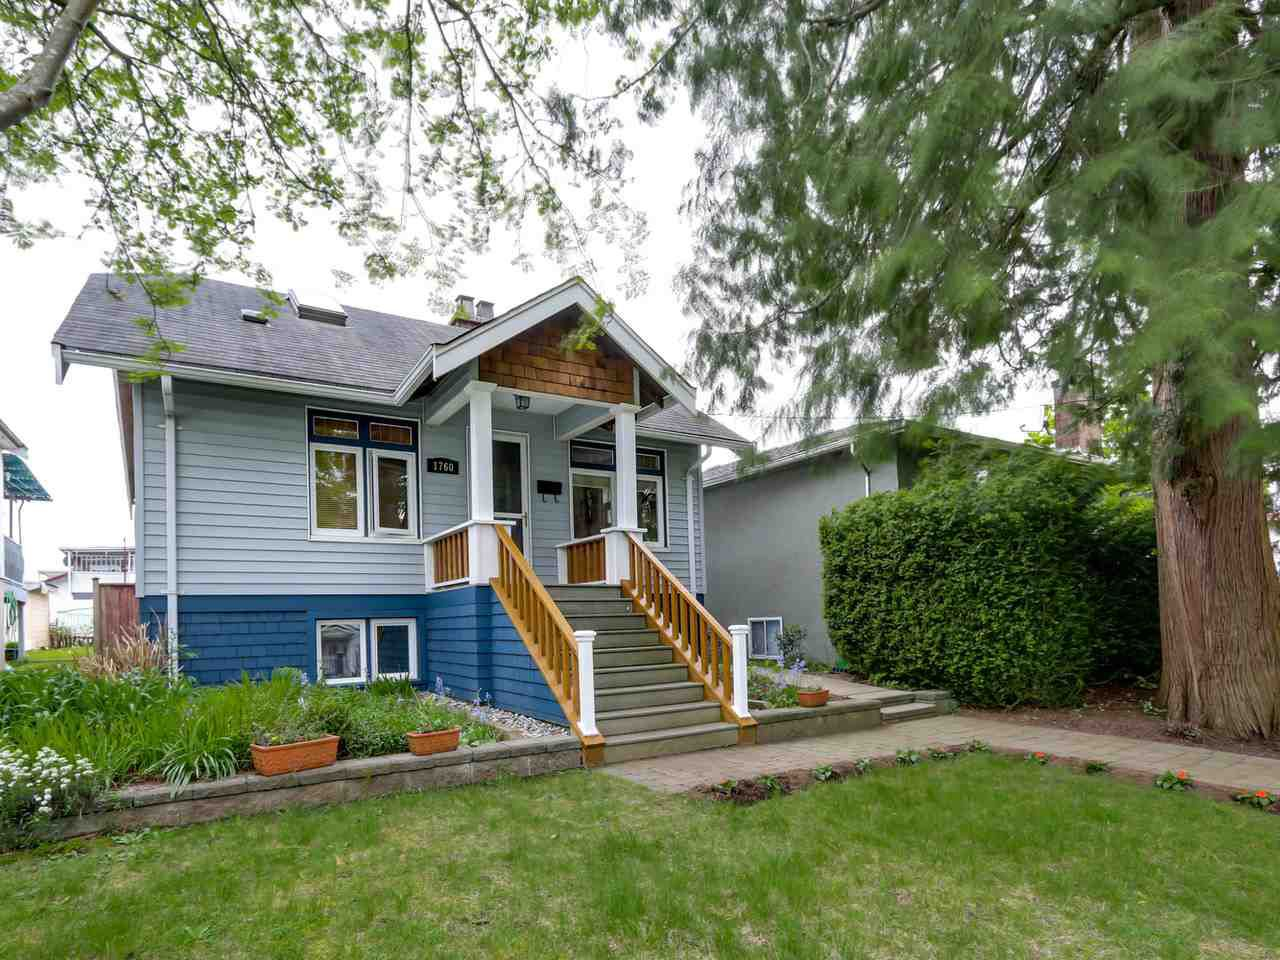 Main Photo: 1760 E 37TH AVENUE in Vancouver: Victoria VE House for sale (Vancouver East)  : MLS®# R2059026